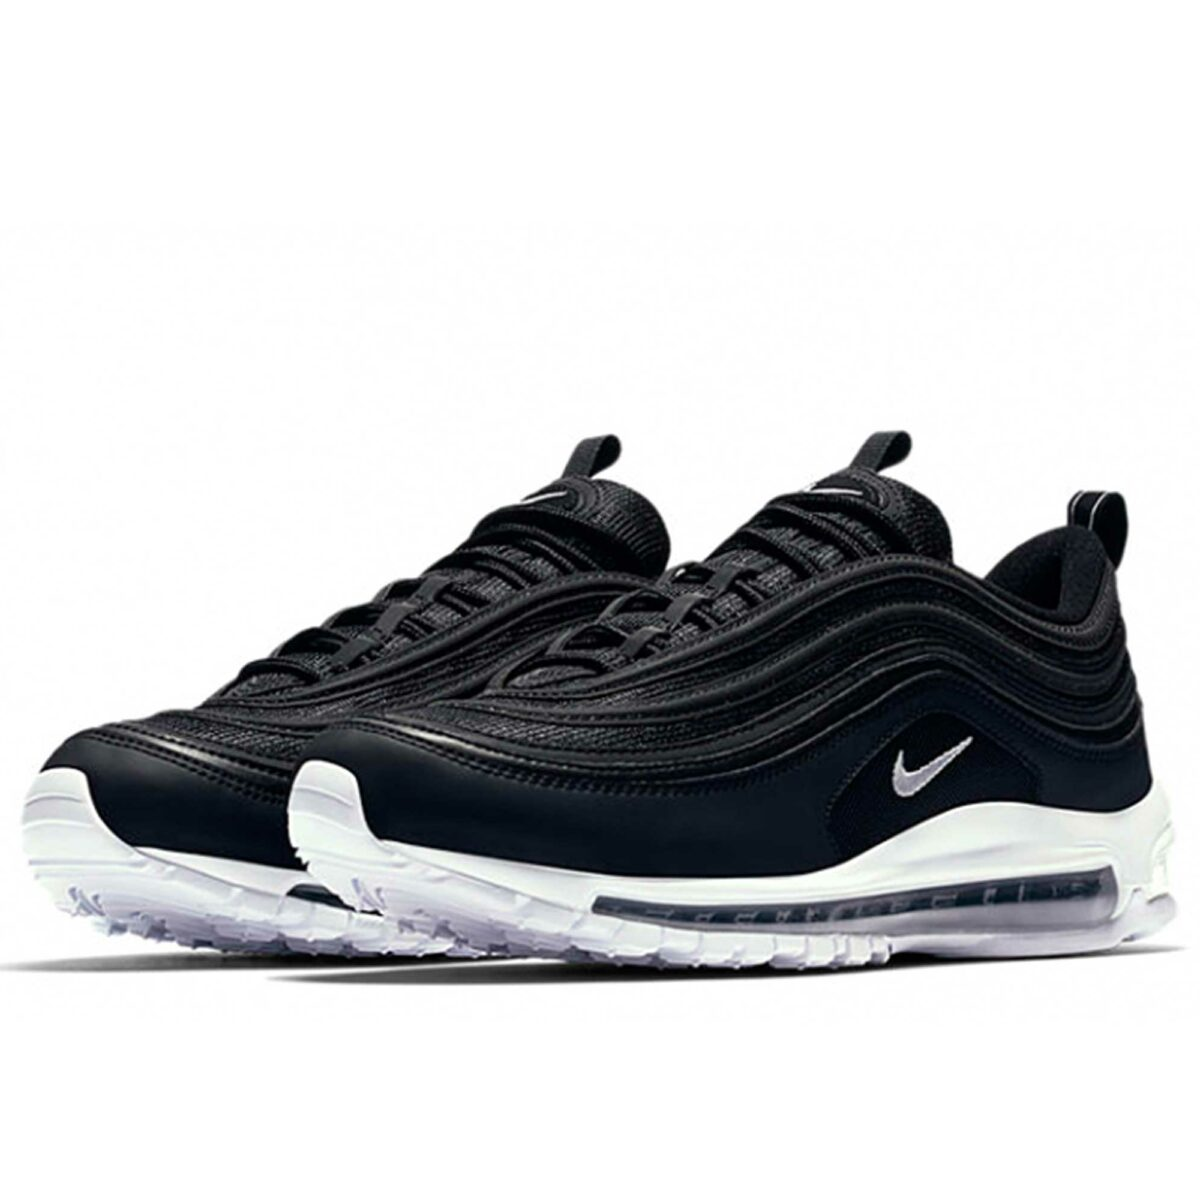 nike air max 97 black white 921826_001 купить